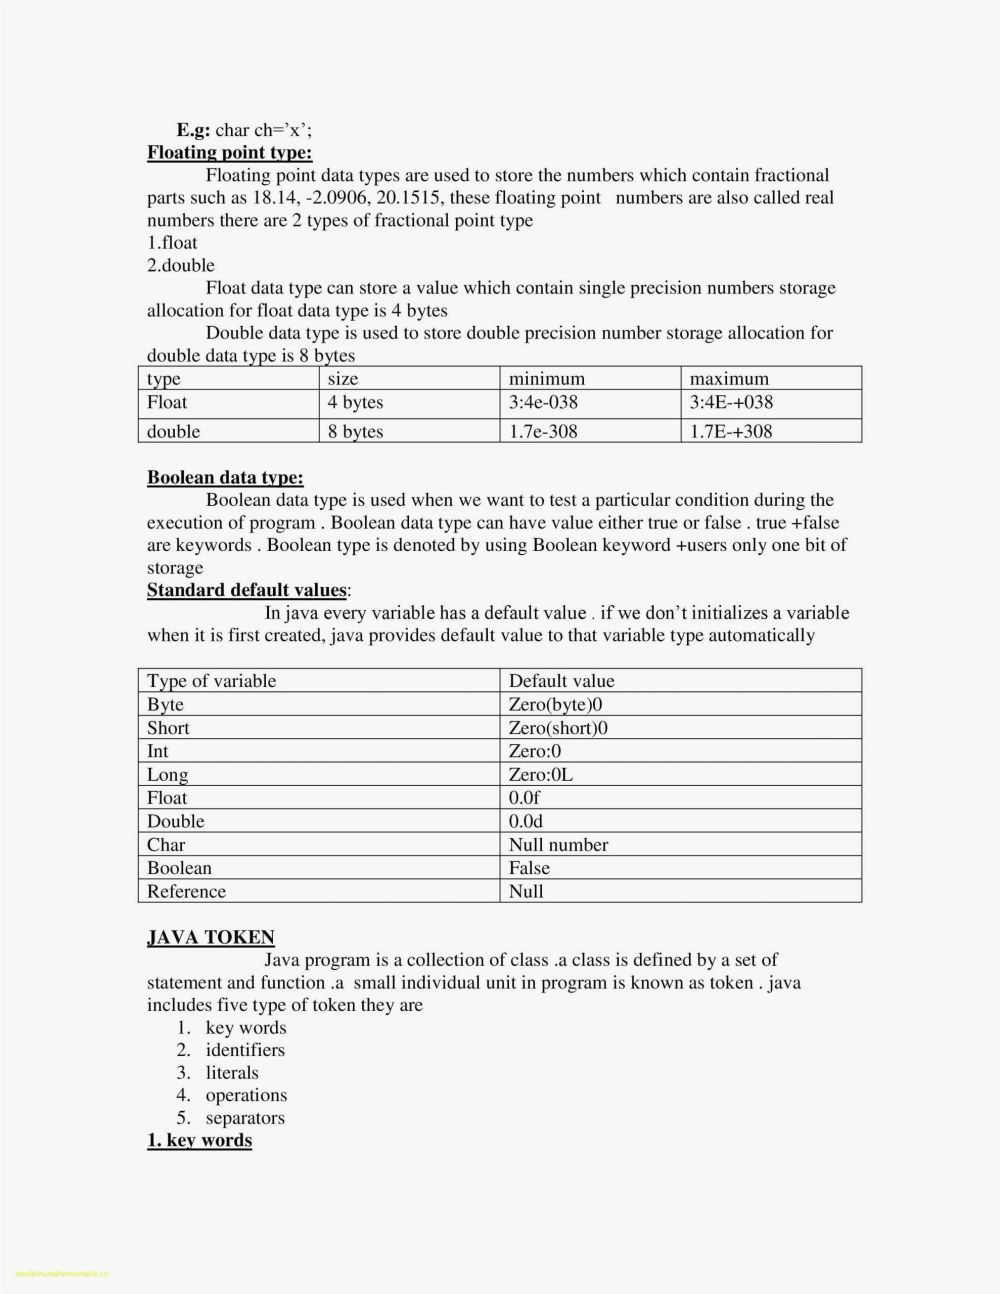 medium resolution of 5 Free Math Worksheets Second Grade 2 Subtraction Subtracting 1 Digit From 2  Digit Missing Number No Regrouping - apocalomegaproductions.com